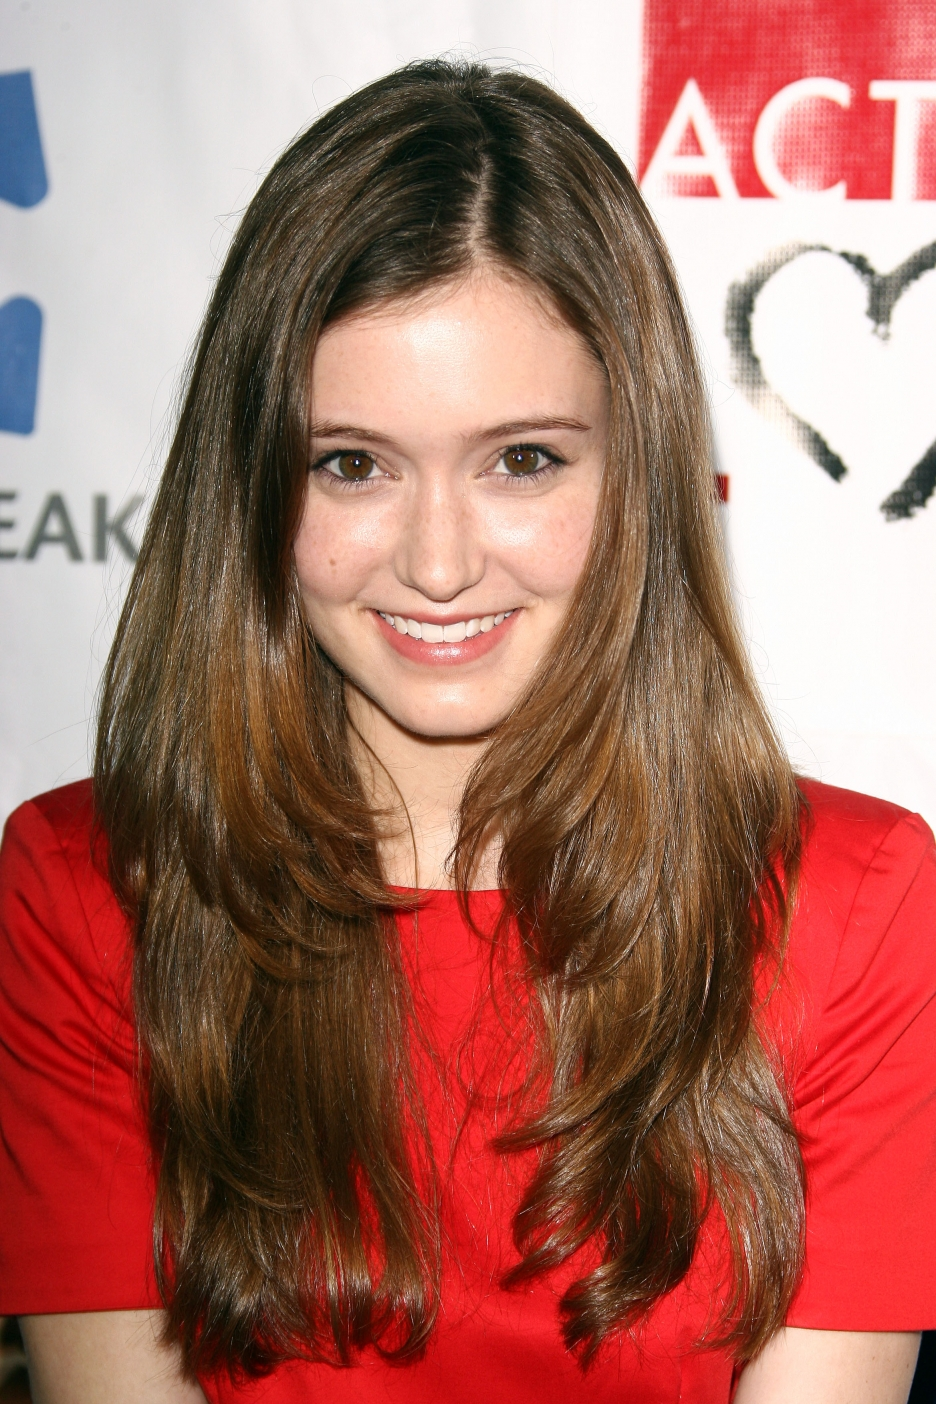 Hayley McFarland nudes (24 photo), Ass, Leaked, Instagram, cameltoe 2019